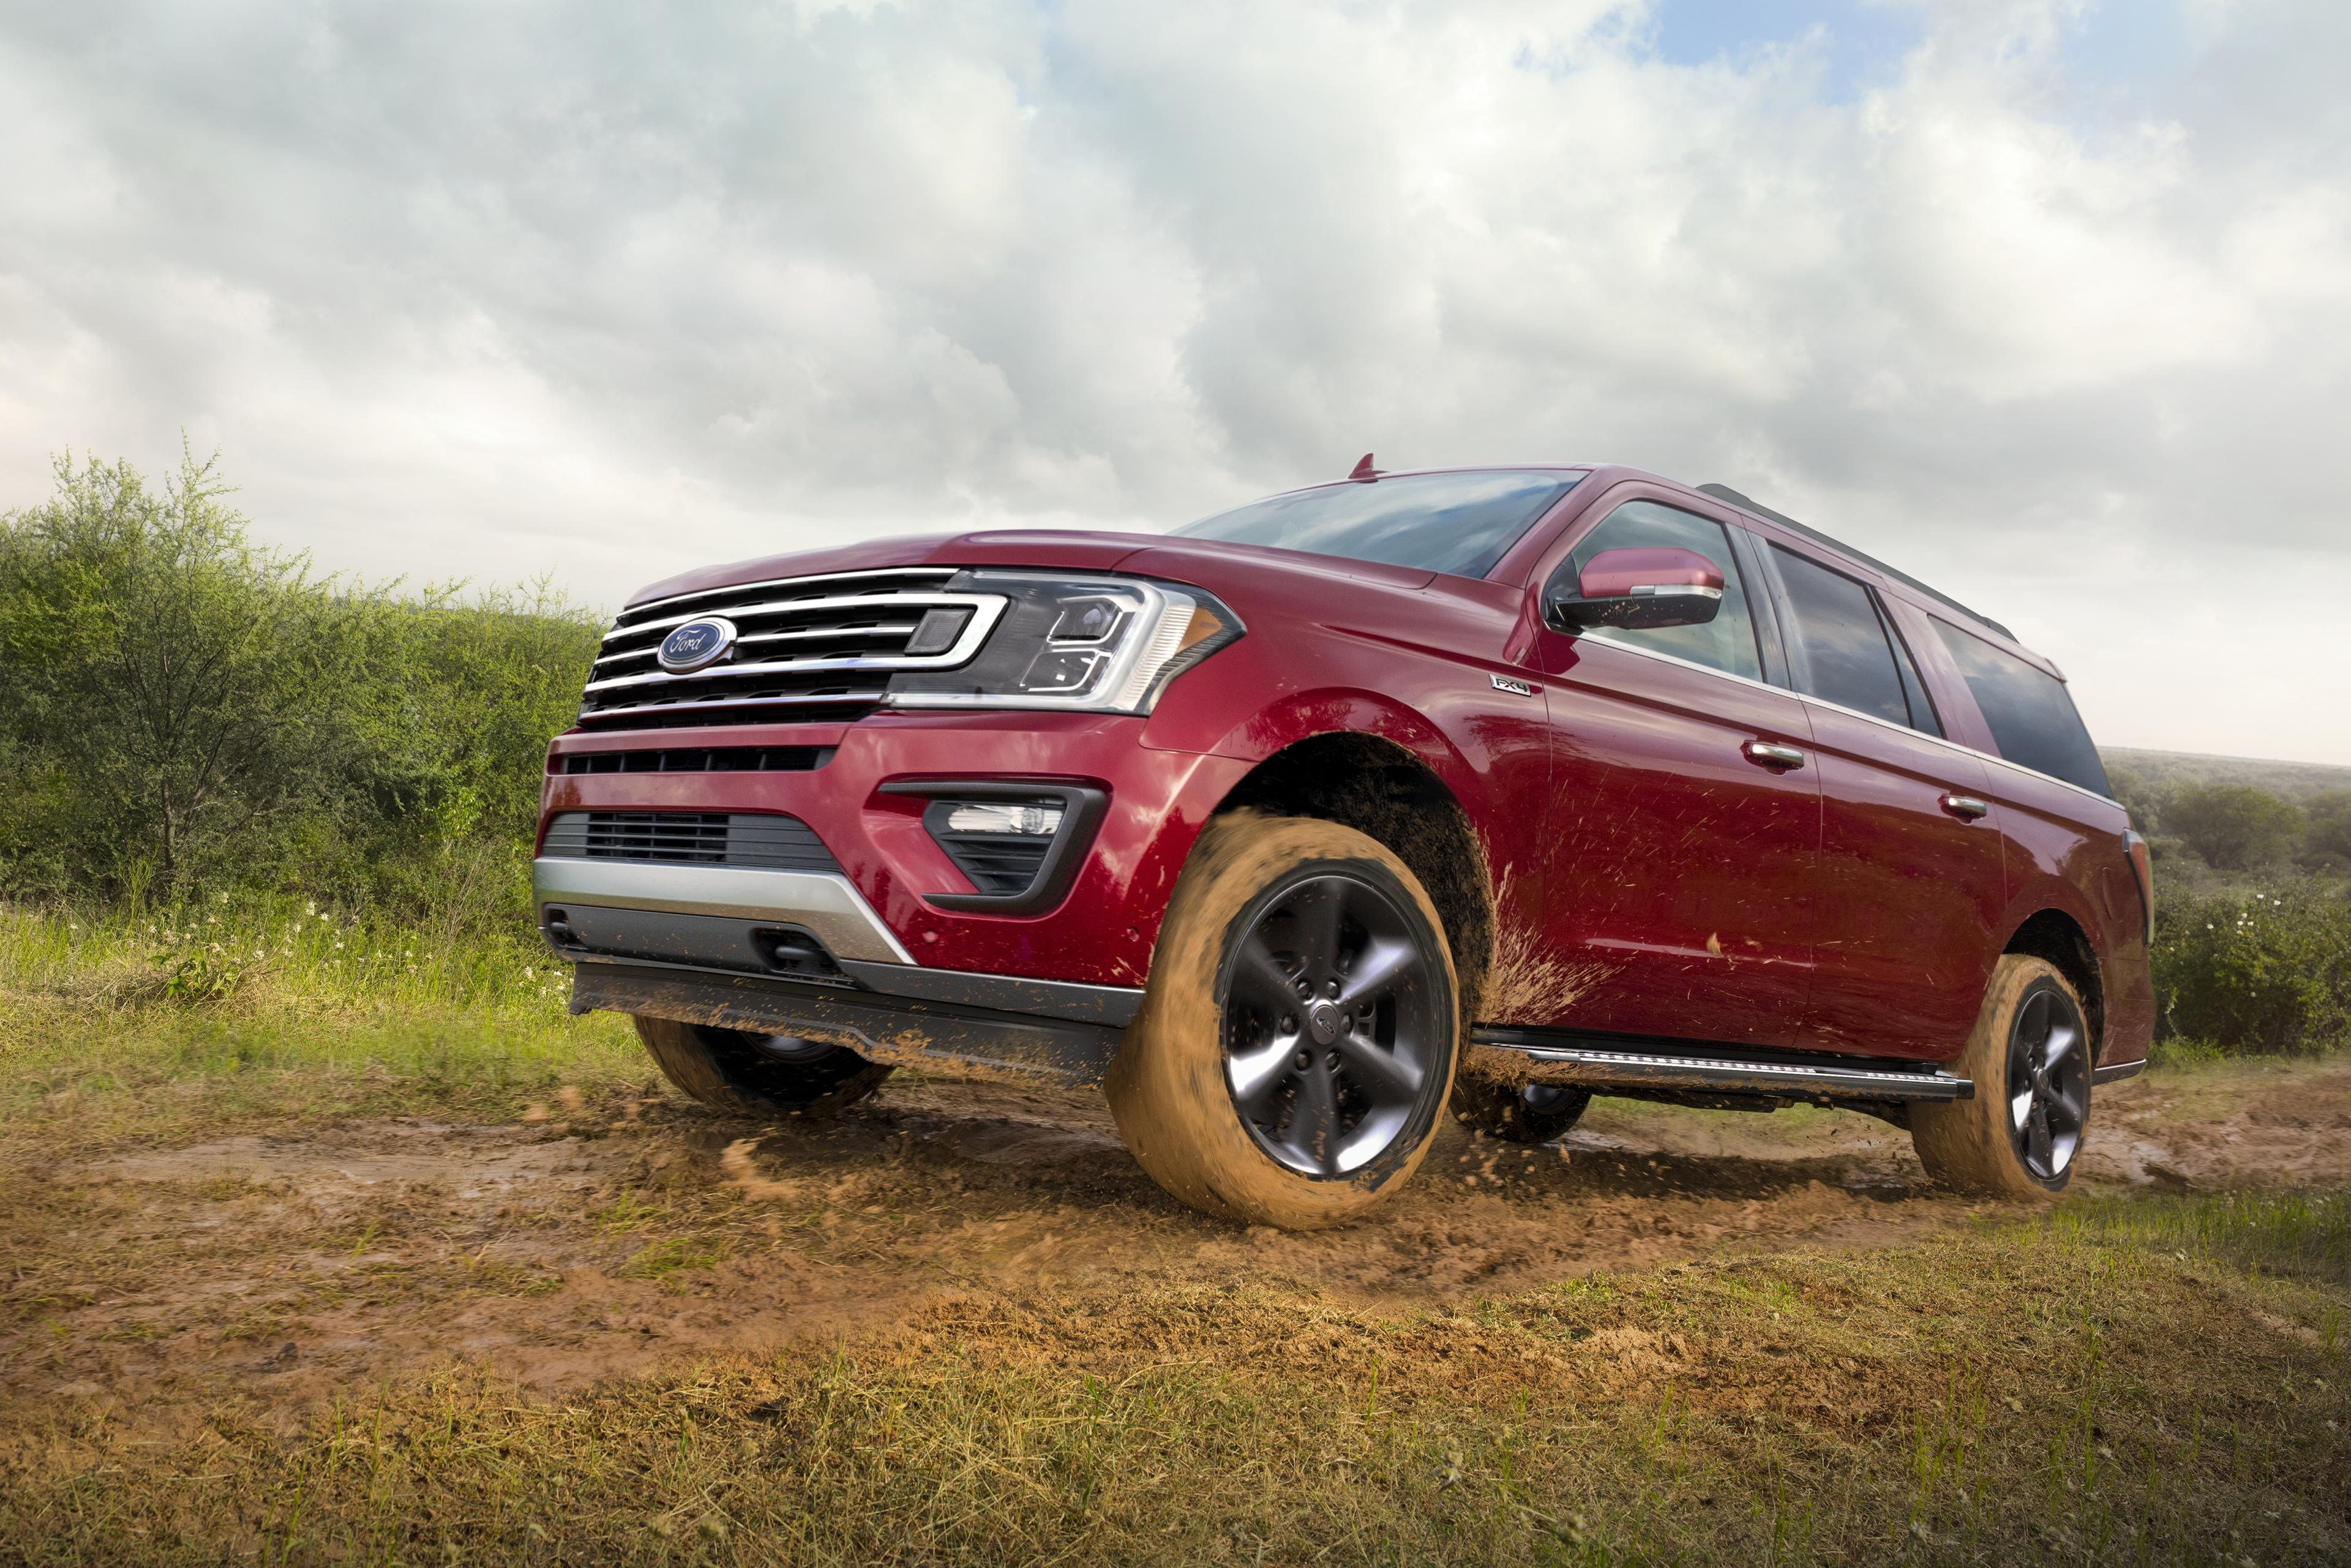 Large SUVs in Newfoundland and Labrador